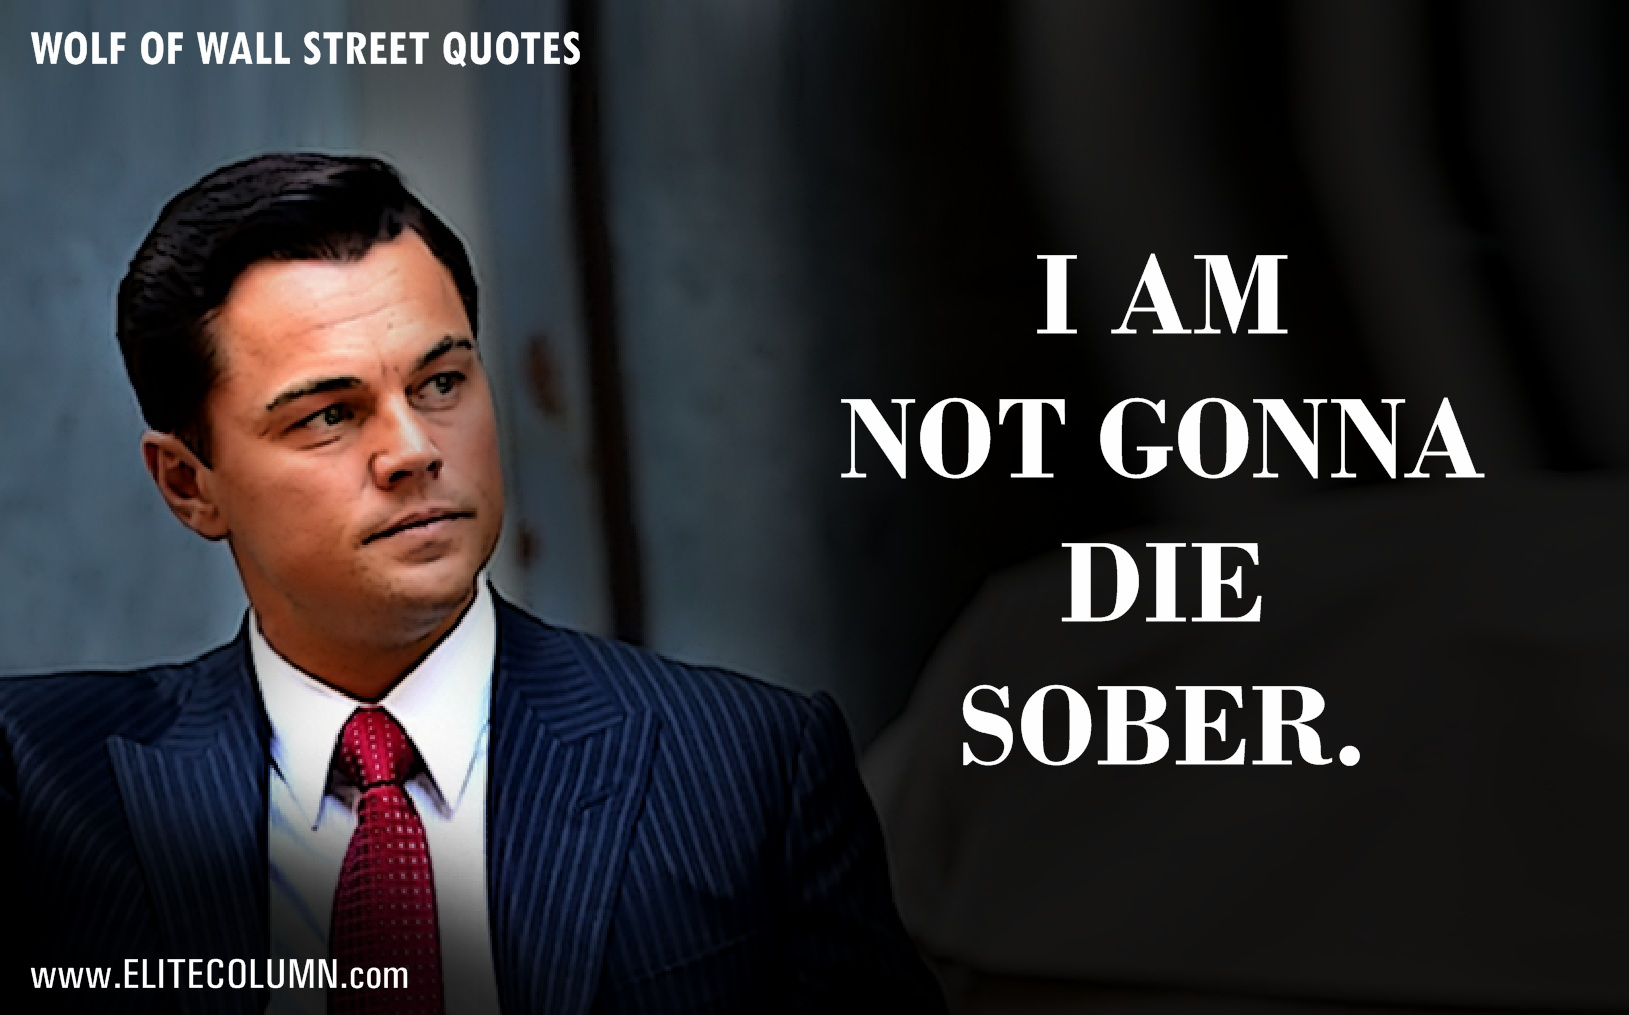 Wolf Of Wall Street Quotes Hd Wallpaper 12 Epic Leonardo Dicaprio Quotes From Quot The Wolf Of Wall